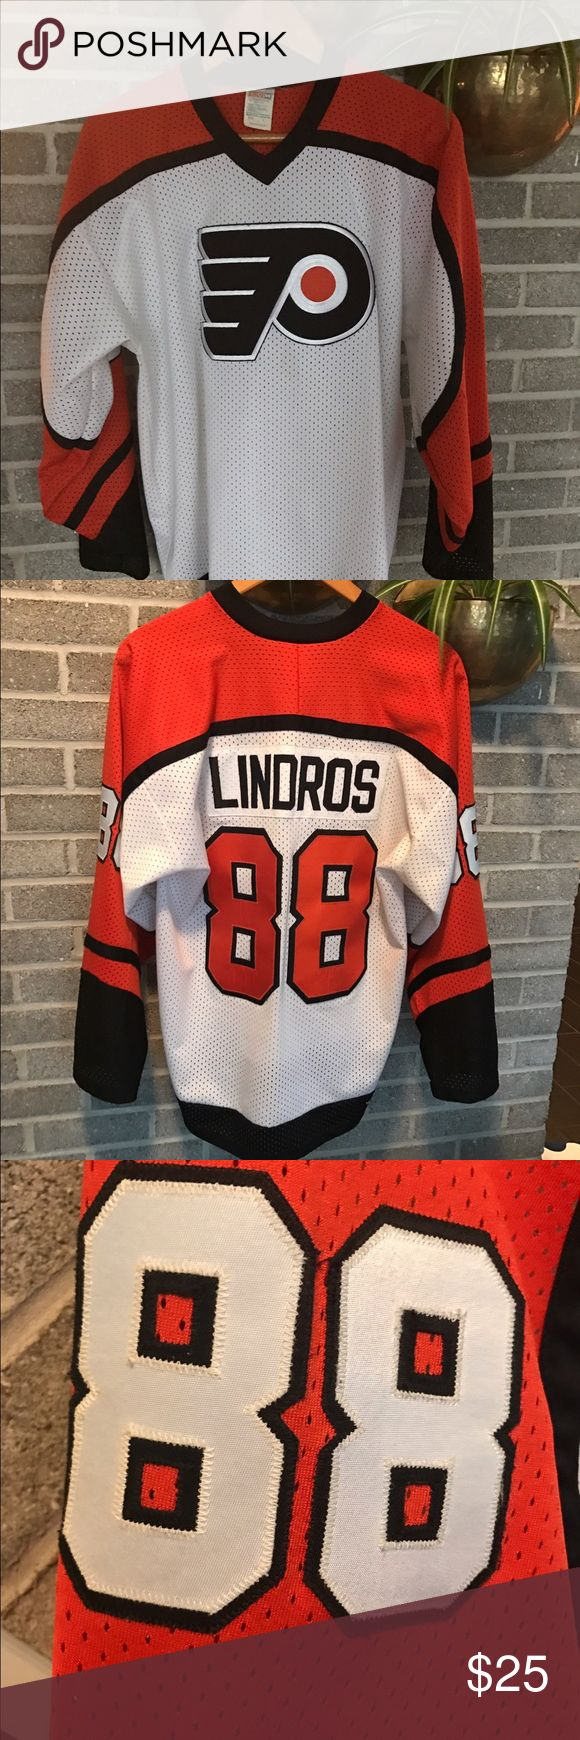 Eric Lindros #88 Philadelphia Flyers jersey Eric Lindros #88 Philadelphia Flyers jersey. In good used condition, please see photos and ask questions. Size large. Logo delaminating, some browning along edges of numbers. One stain as pictured. Shirts